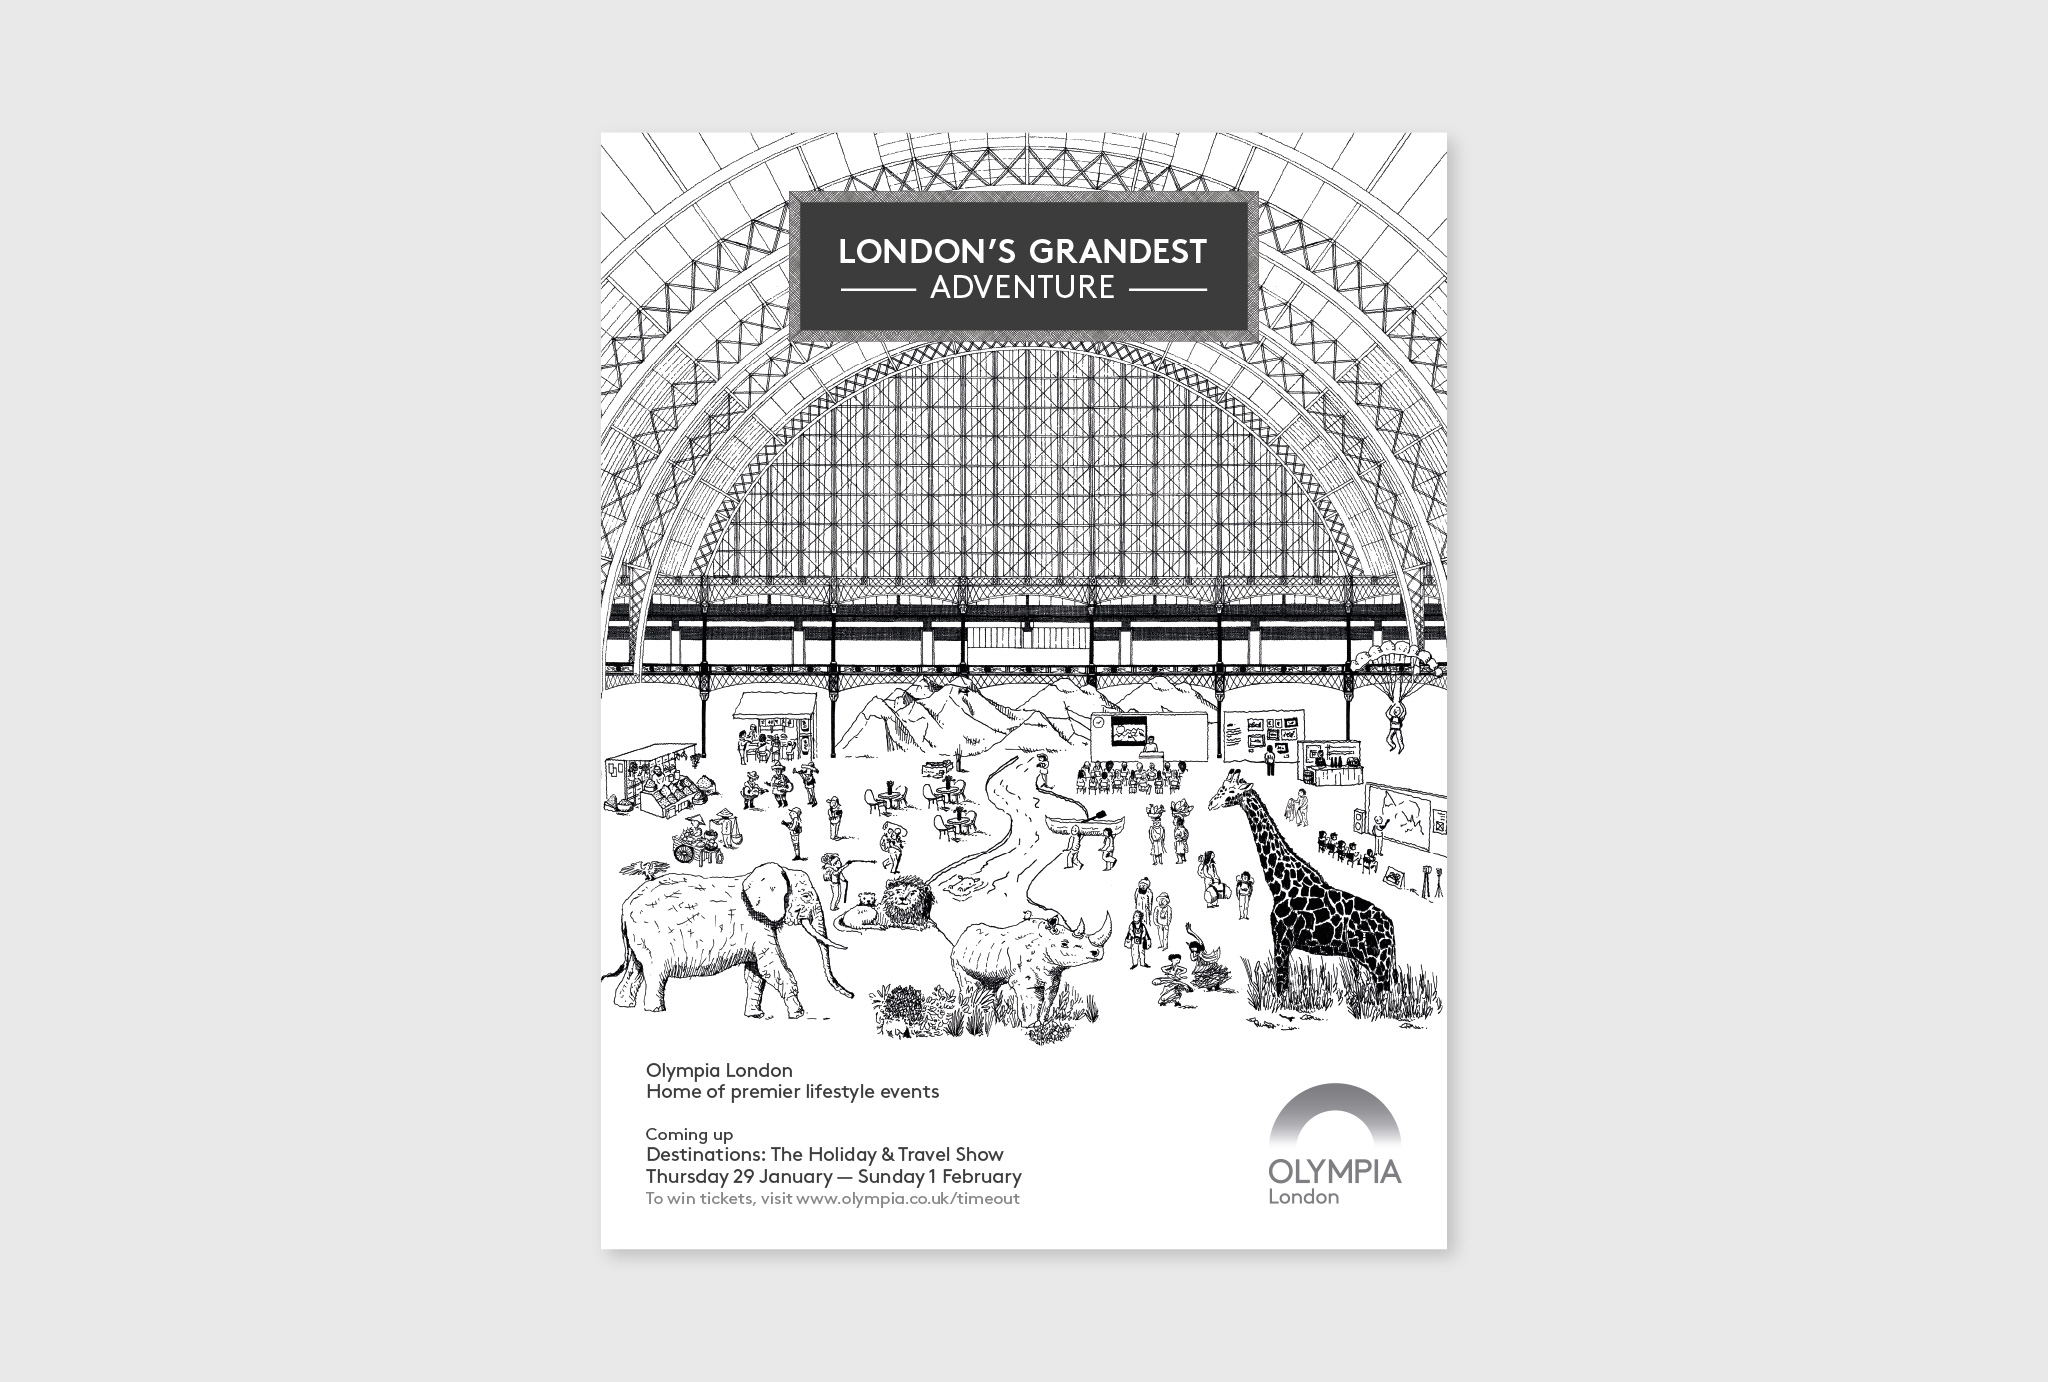 black and white, hand drawn design for London's Grandest ADVENTURE